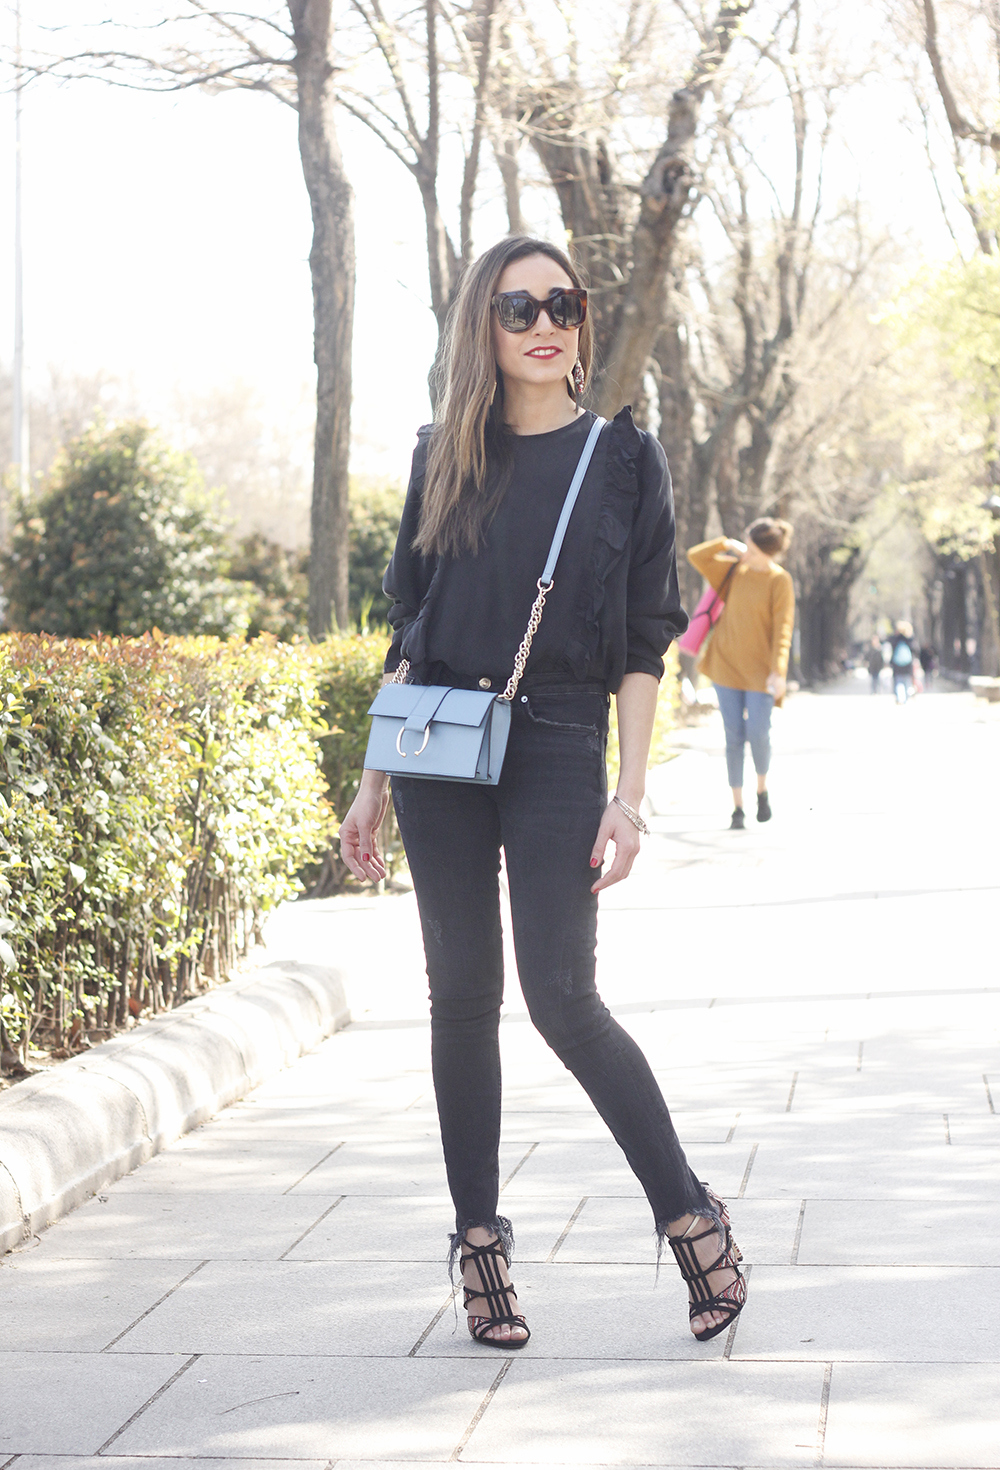 Black ruffled shirt black jeans uterqüe bag earrings sandals outfit style fashion céline sunnies spring11